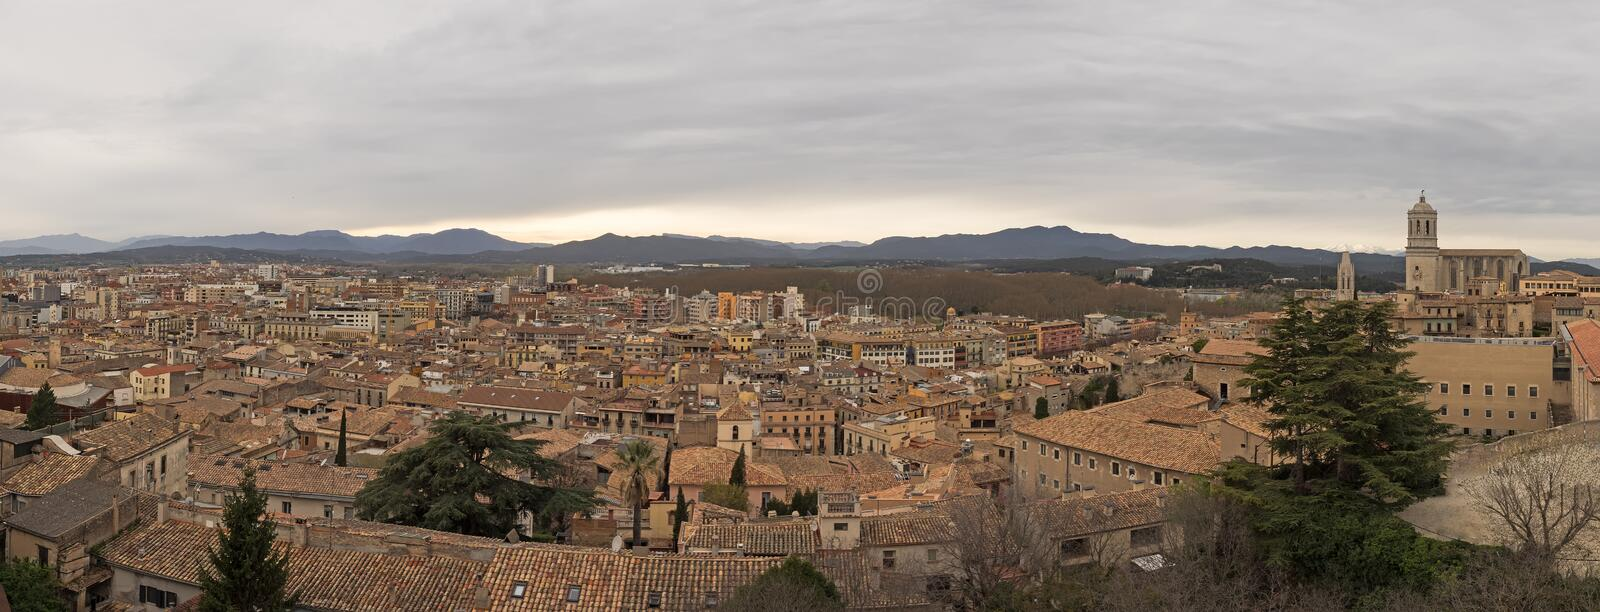 Aerial view of the city Girona, Spain, in panoramic format royalty free stock photography